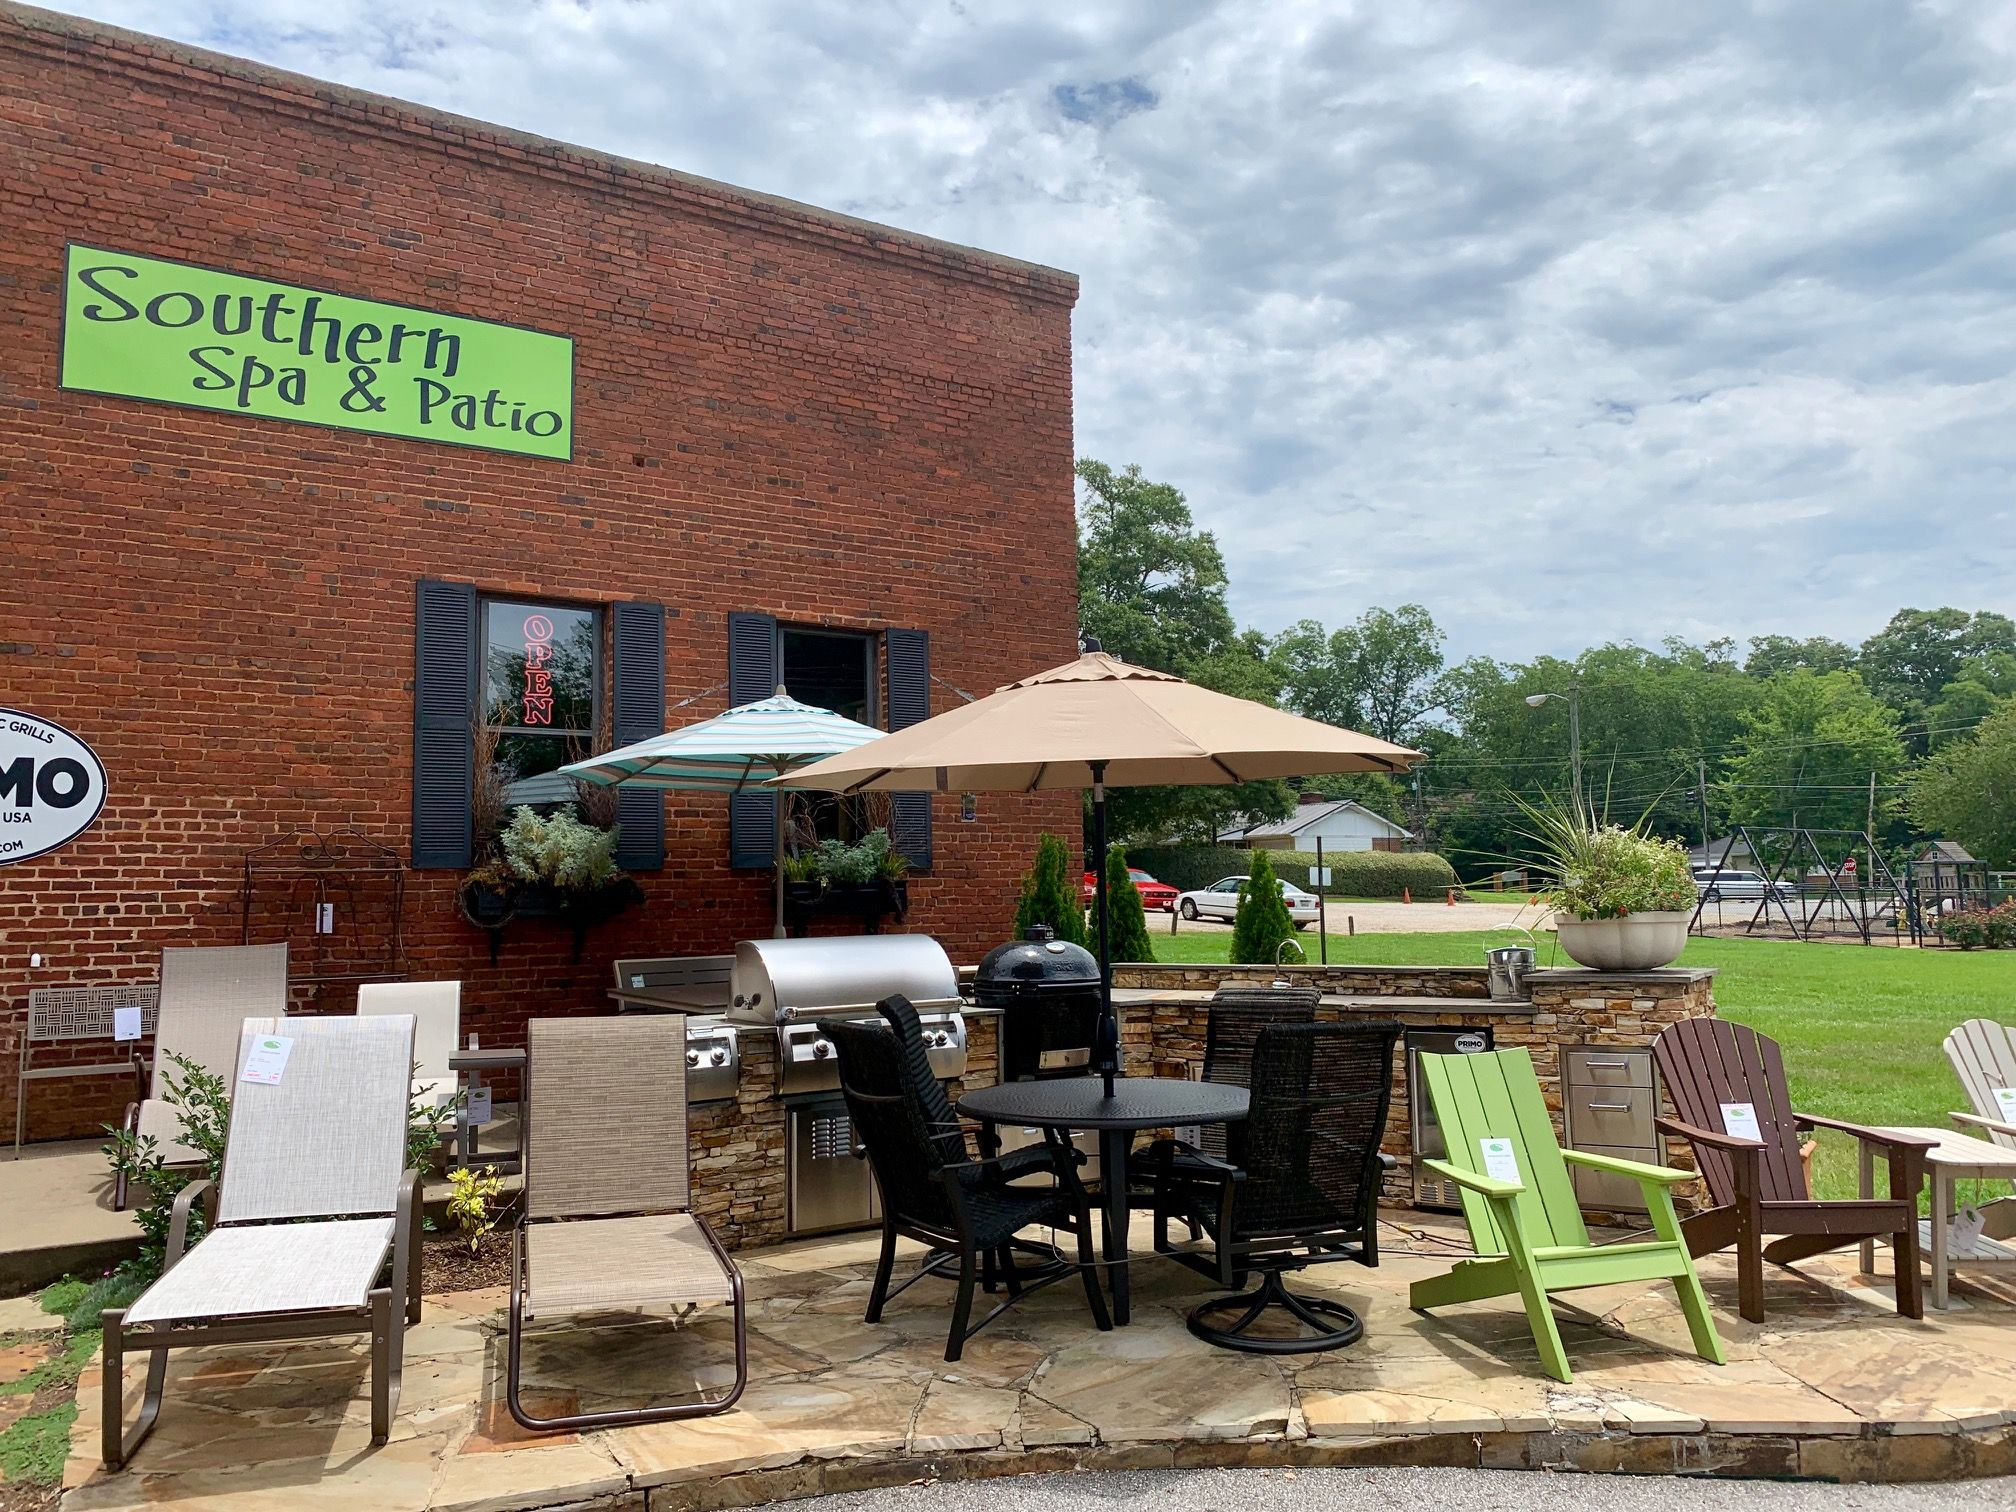 Southern Spa and Patio - Watkinsville, Georgia